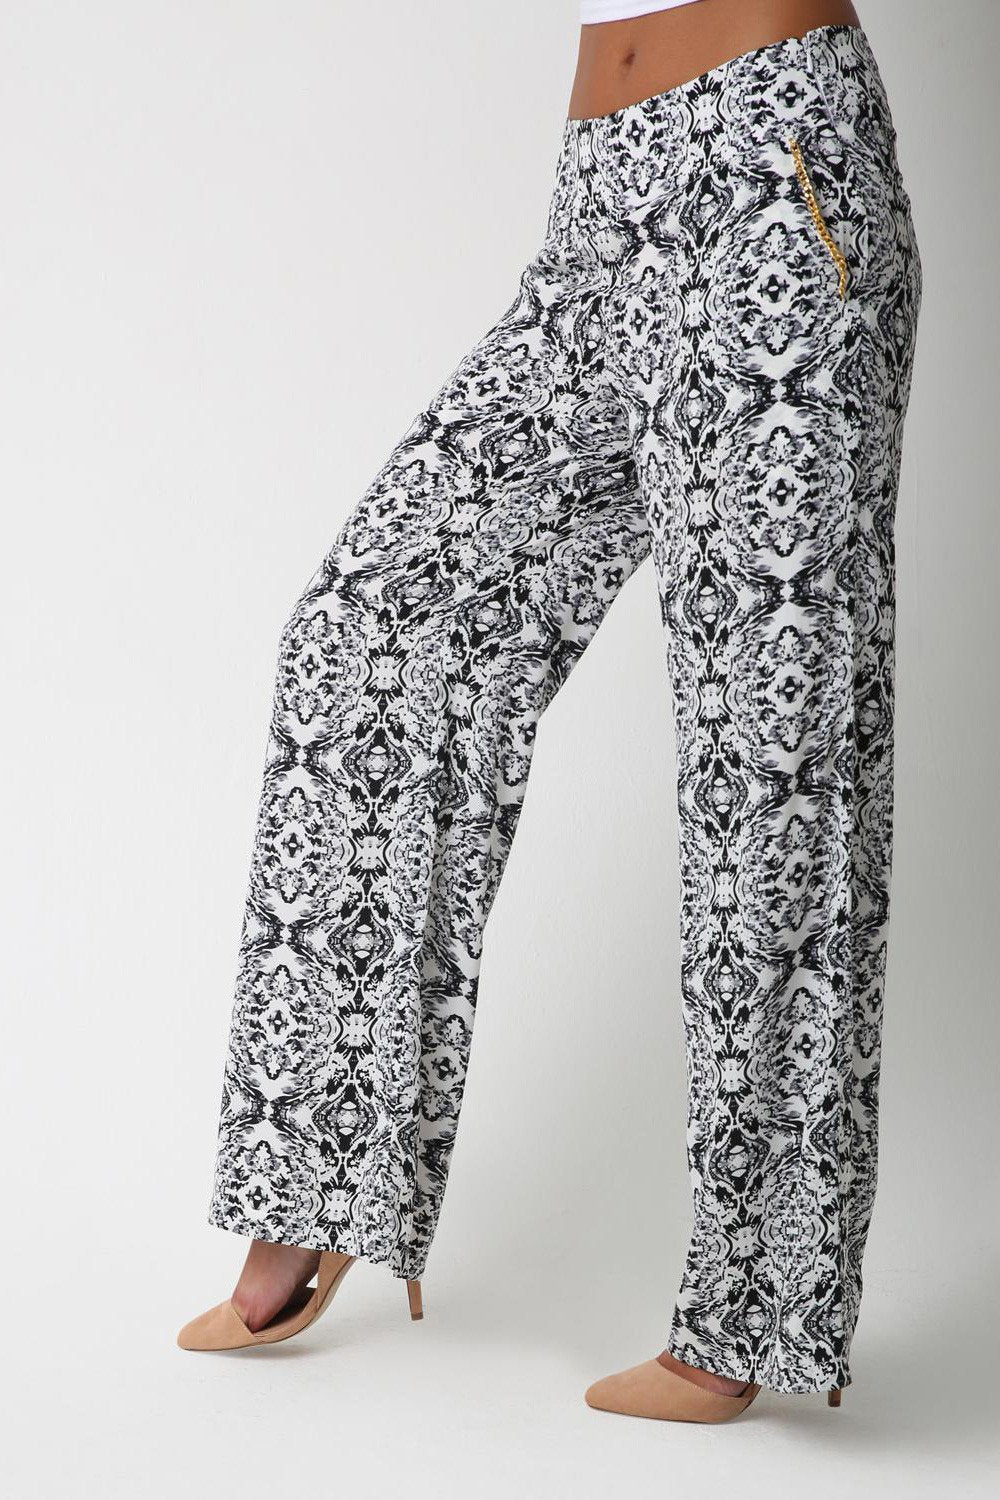 Illusion Print Mega Pants